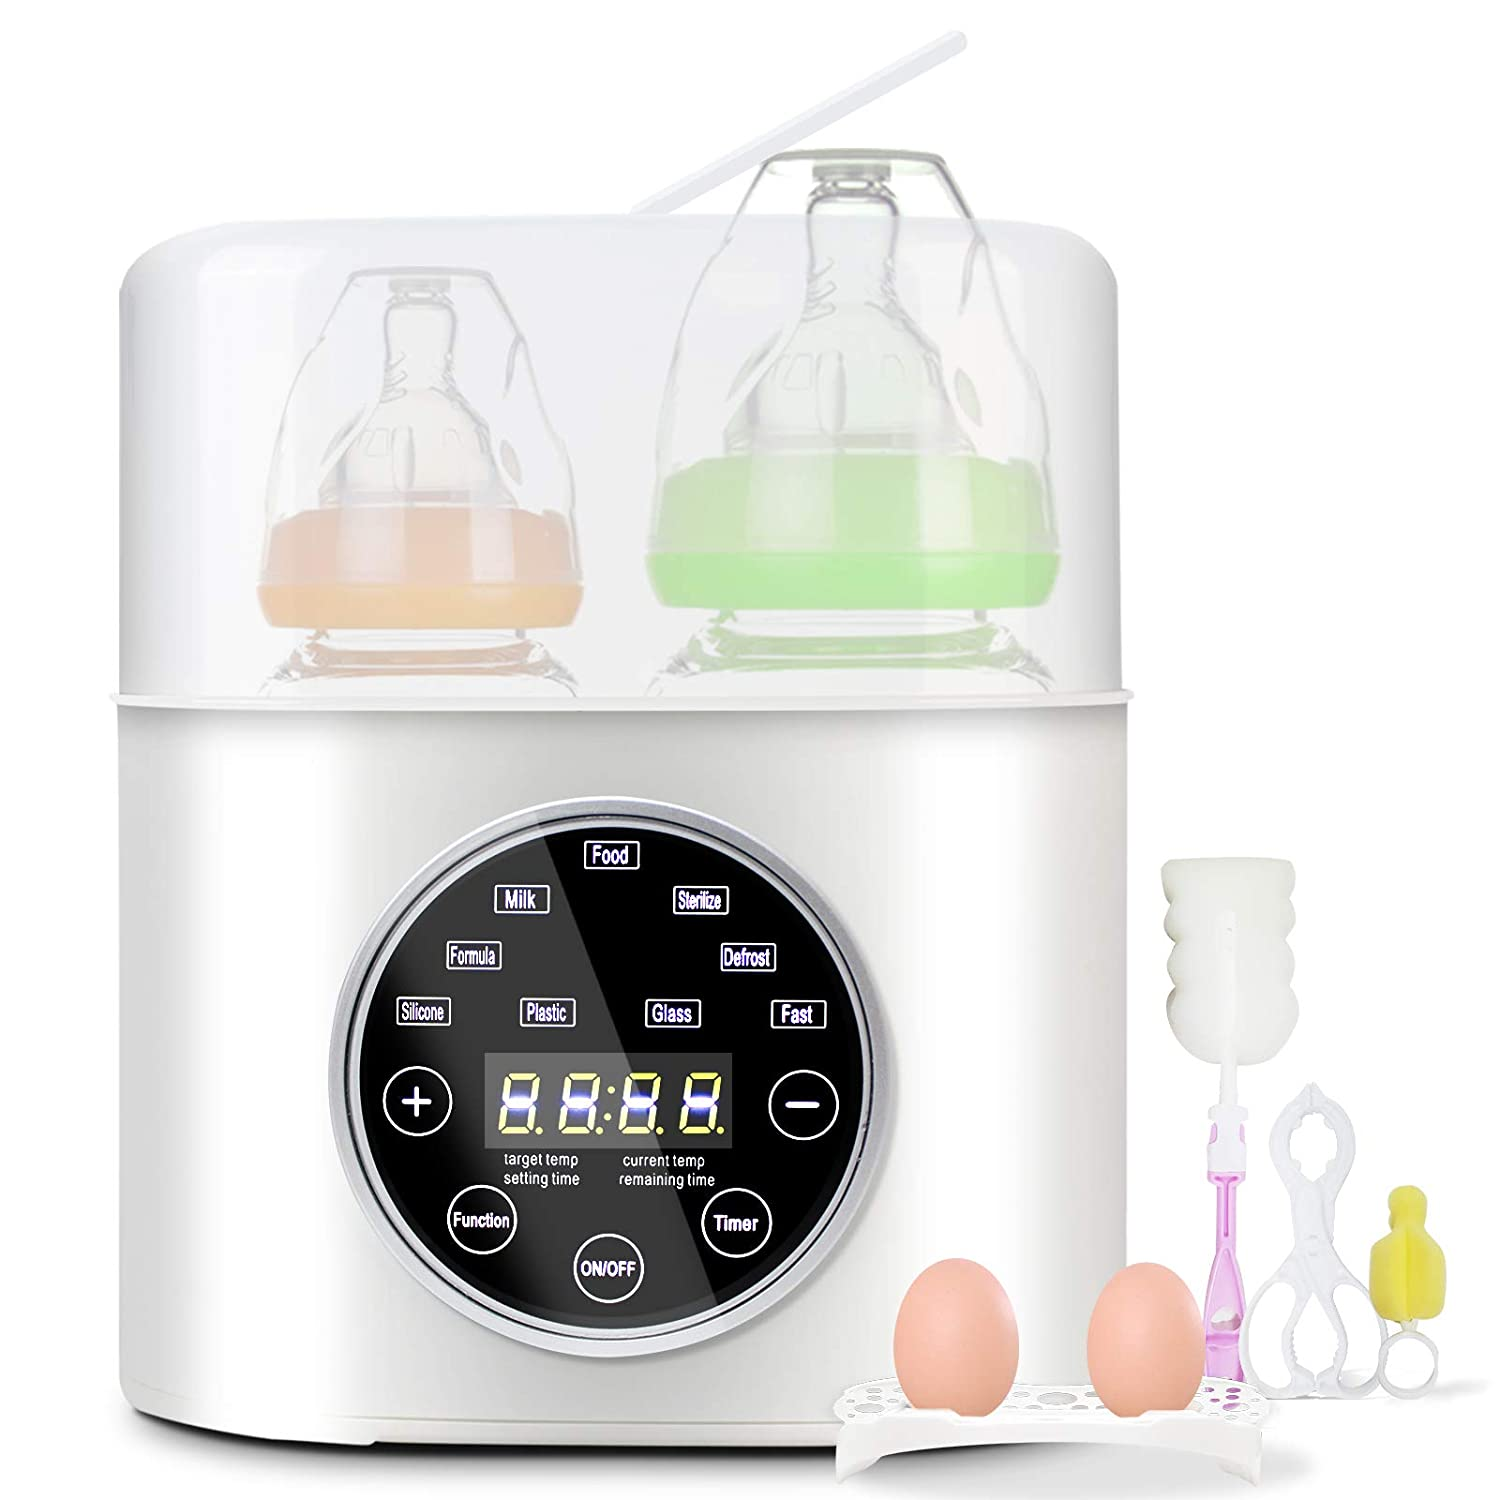 Bottle Warmer, AUMIO Fast Baby Bottle Warmer and Sterilizer 6-in-1 Baby Food Heater and Defrost Warmer for Baby Milk Breastmilk Formula with LED Display and Thermostat Timer Function Two Bottles